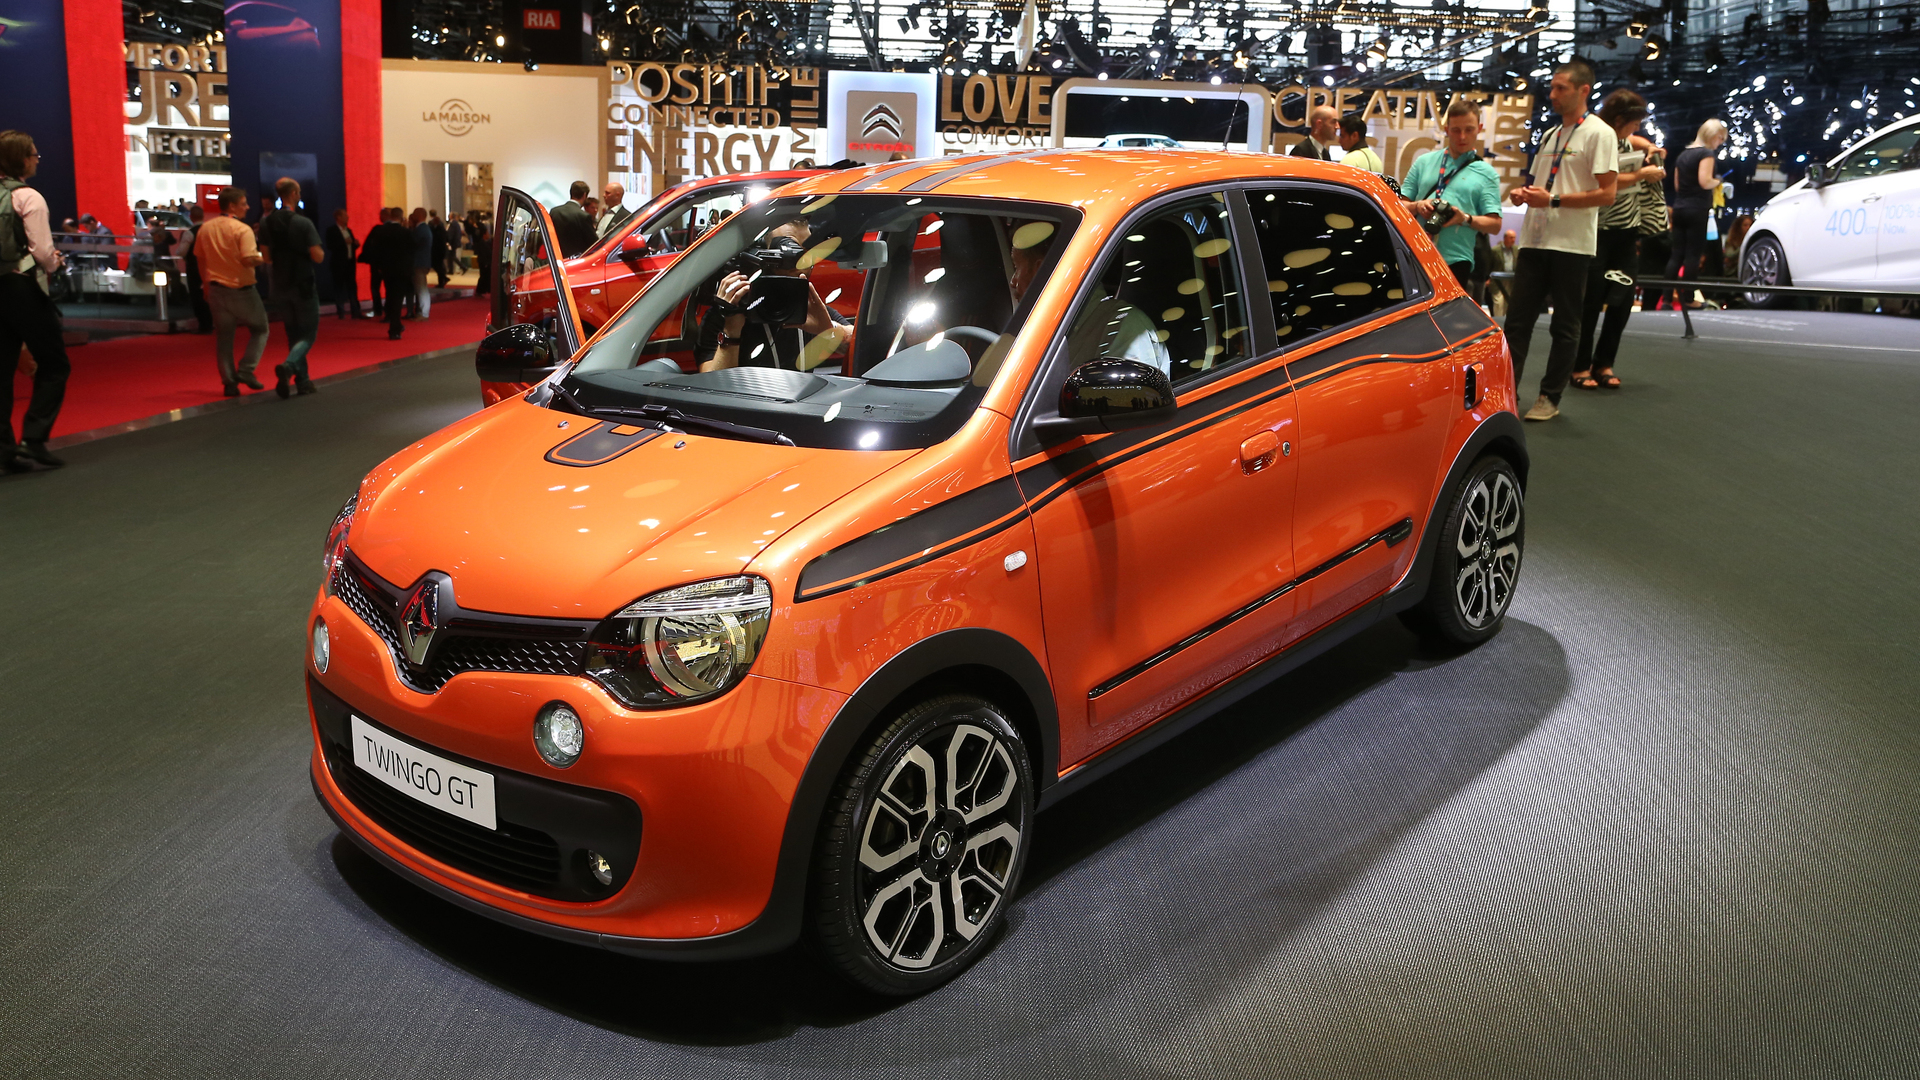 Renault Twingo GT in Paris proves good things come in small